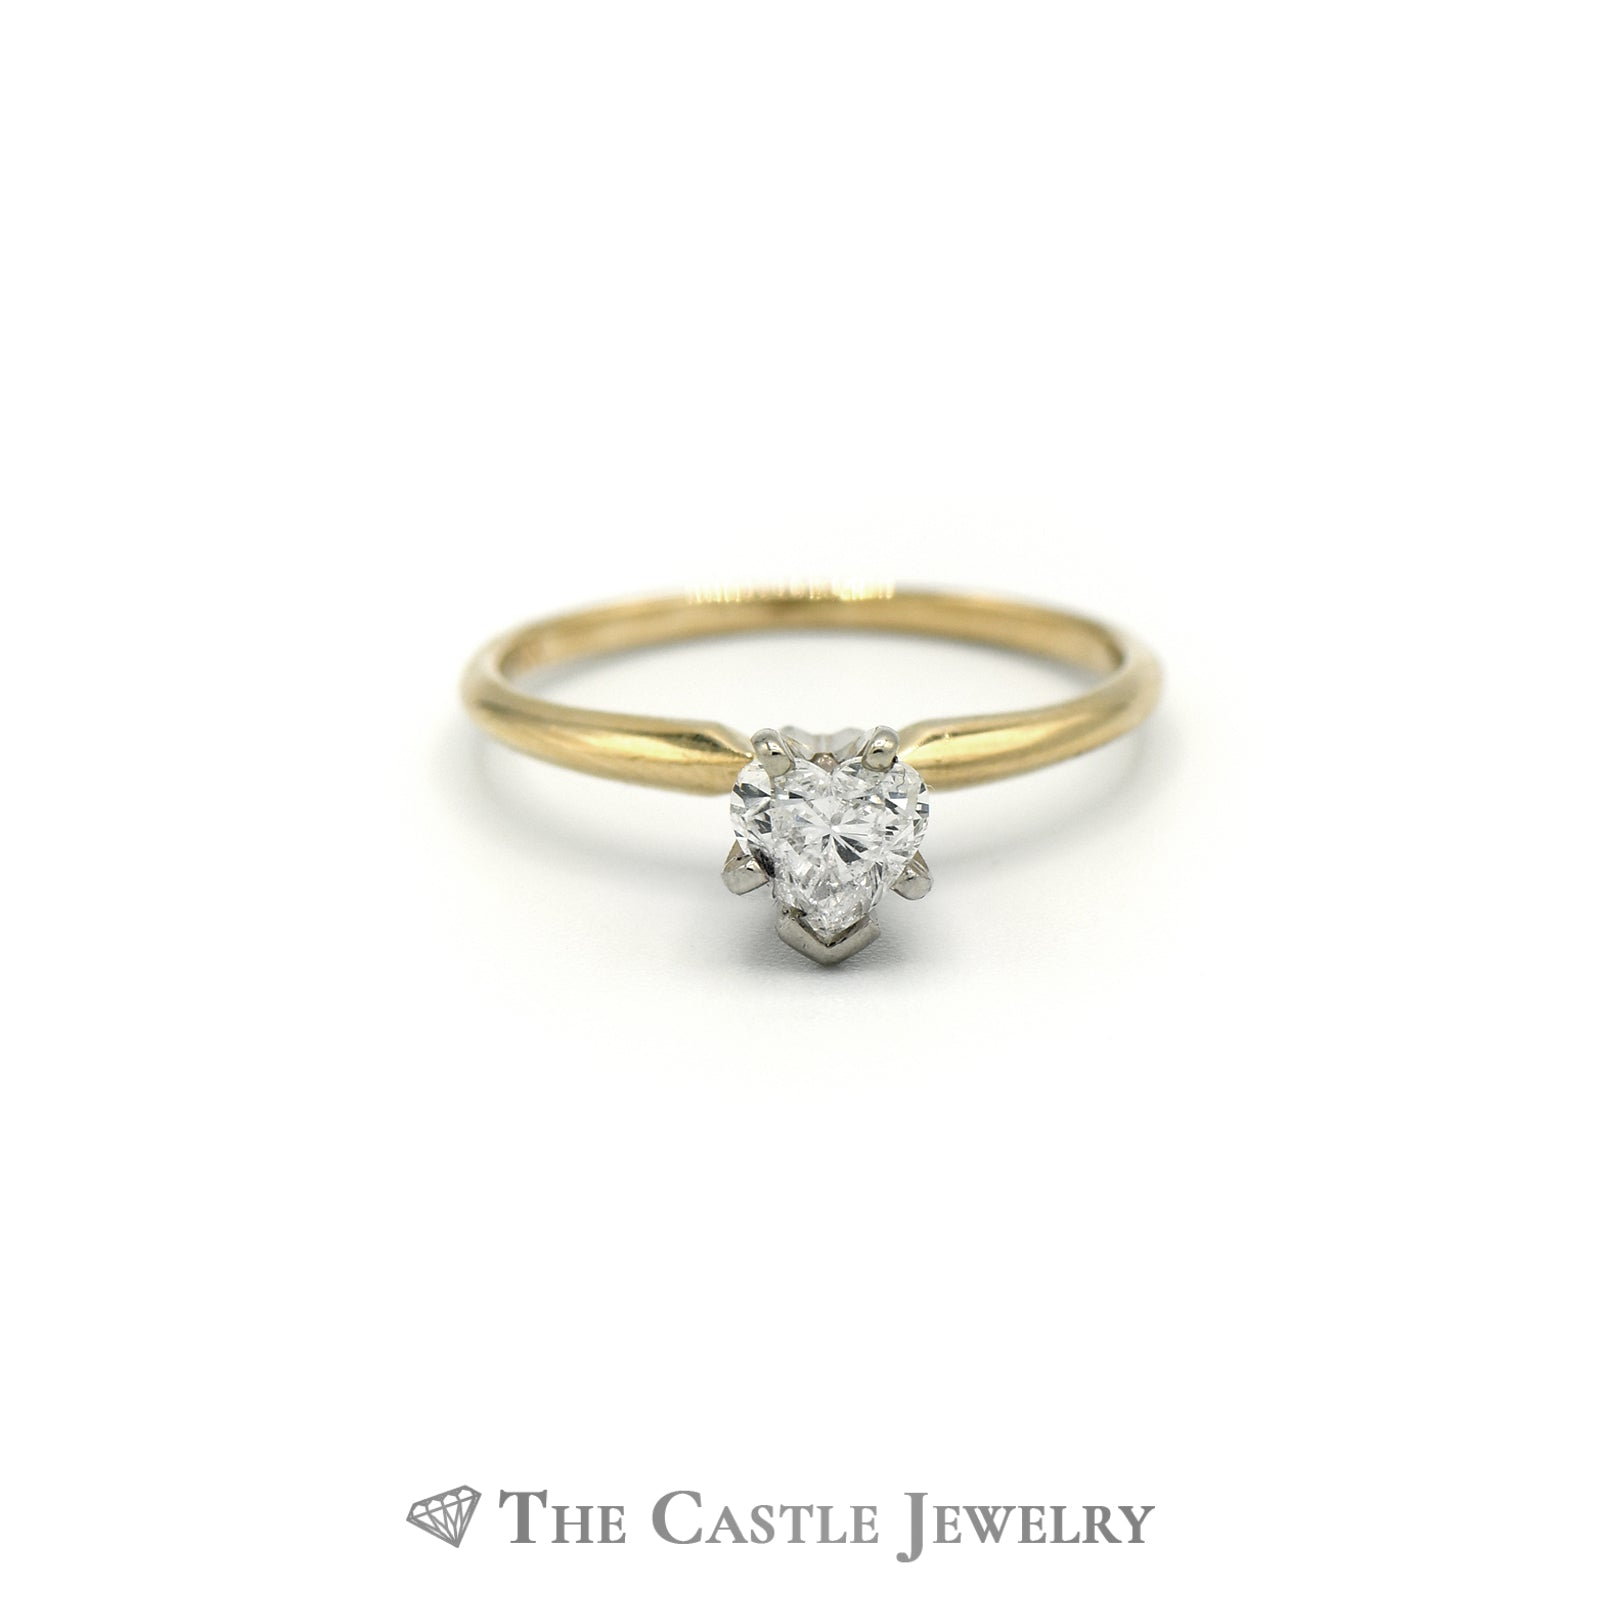 .48ct Heart Shaped Diamond Solitaire Engagement Ring Crafted in 14k Yellow Gold